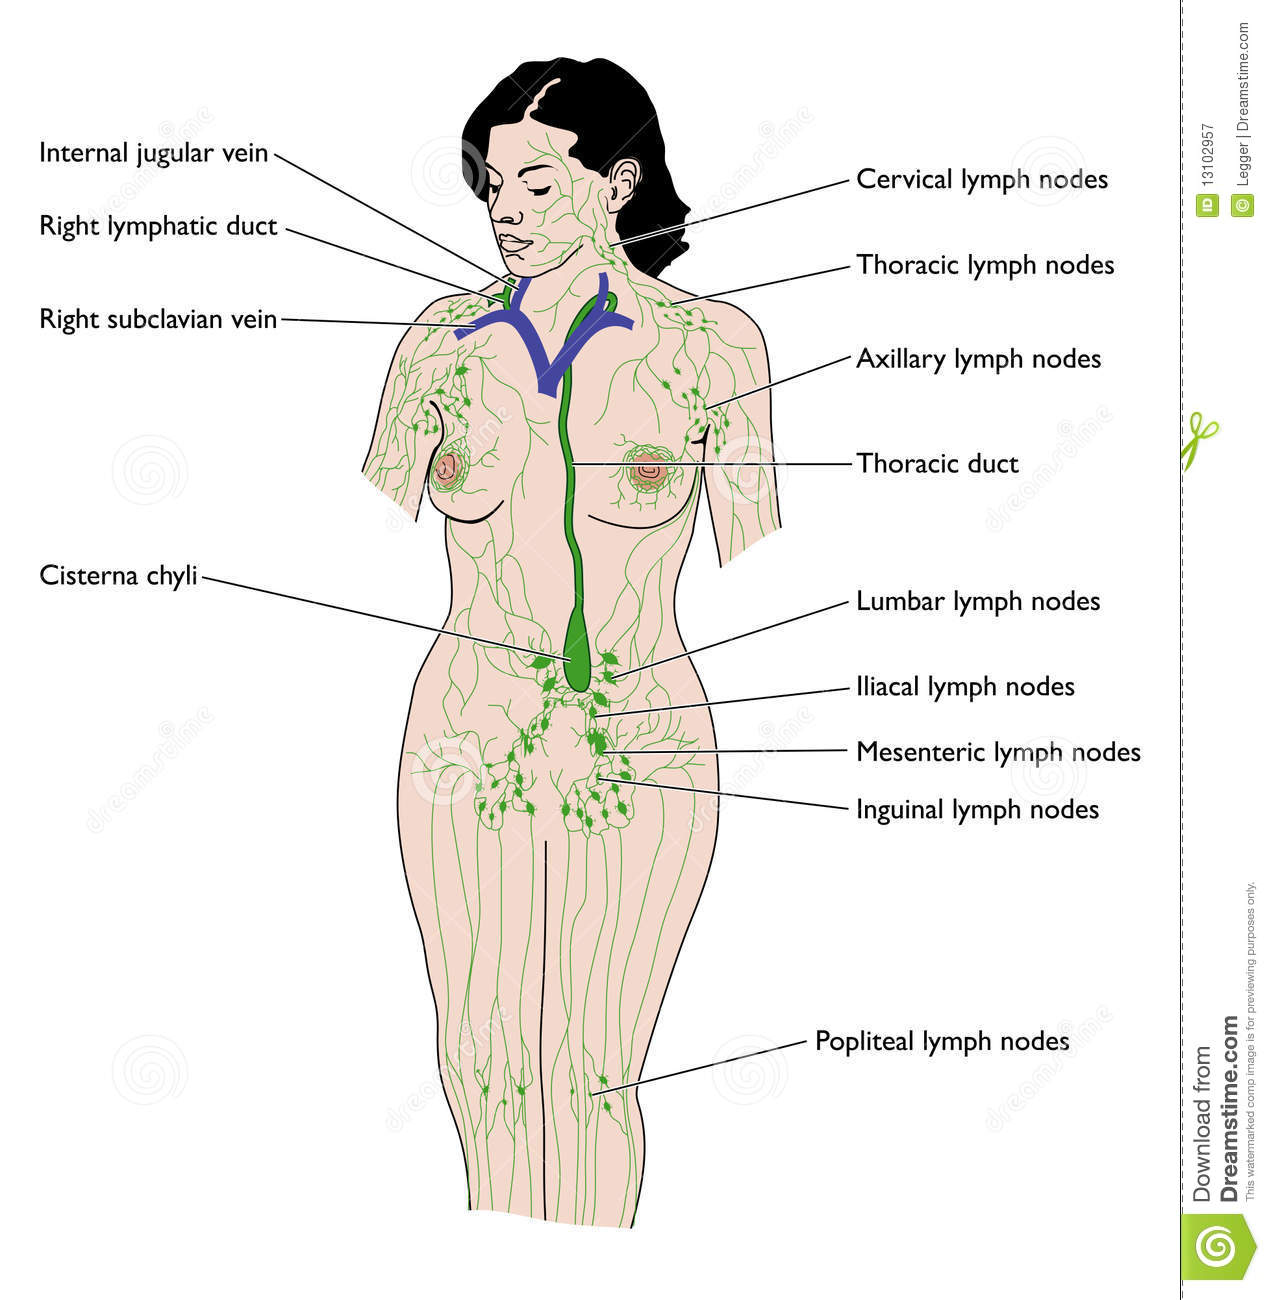 hight resolution of overview of the lymphatic system including ducts nodes cisterna chyli and thoracic duct